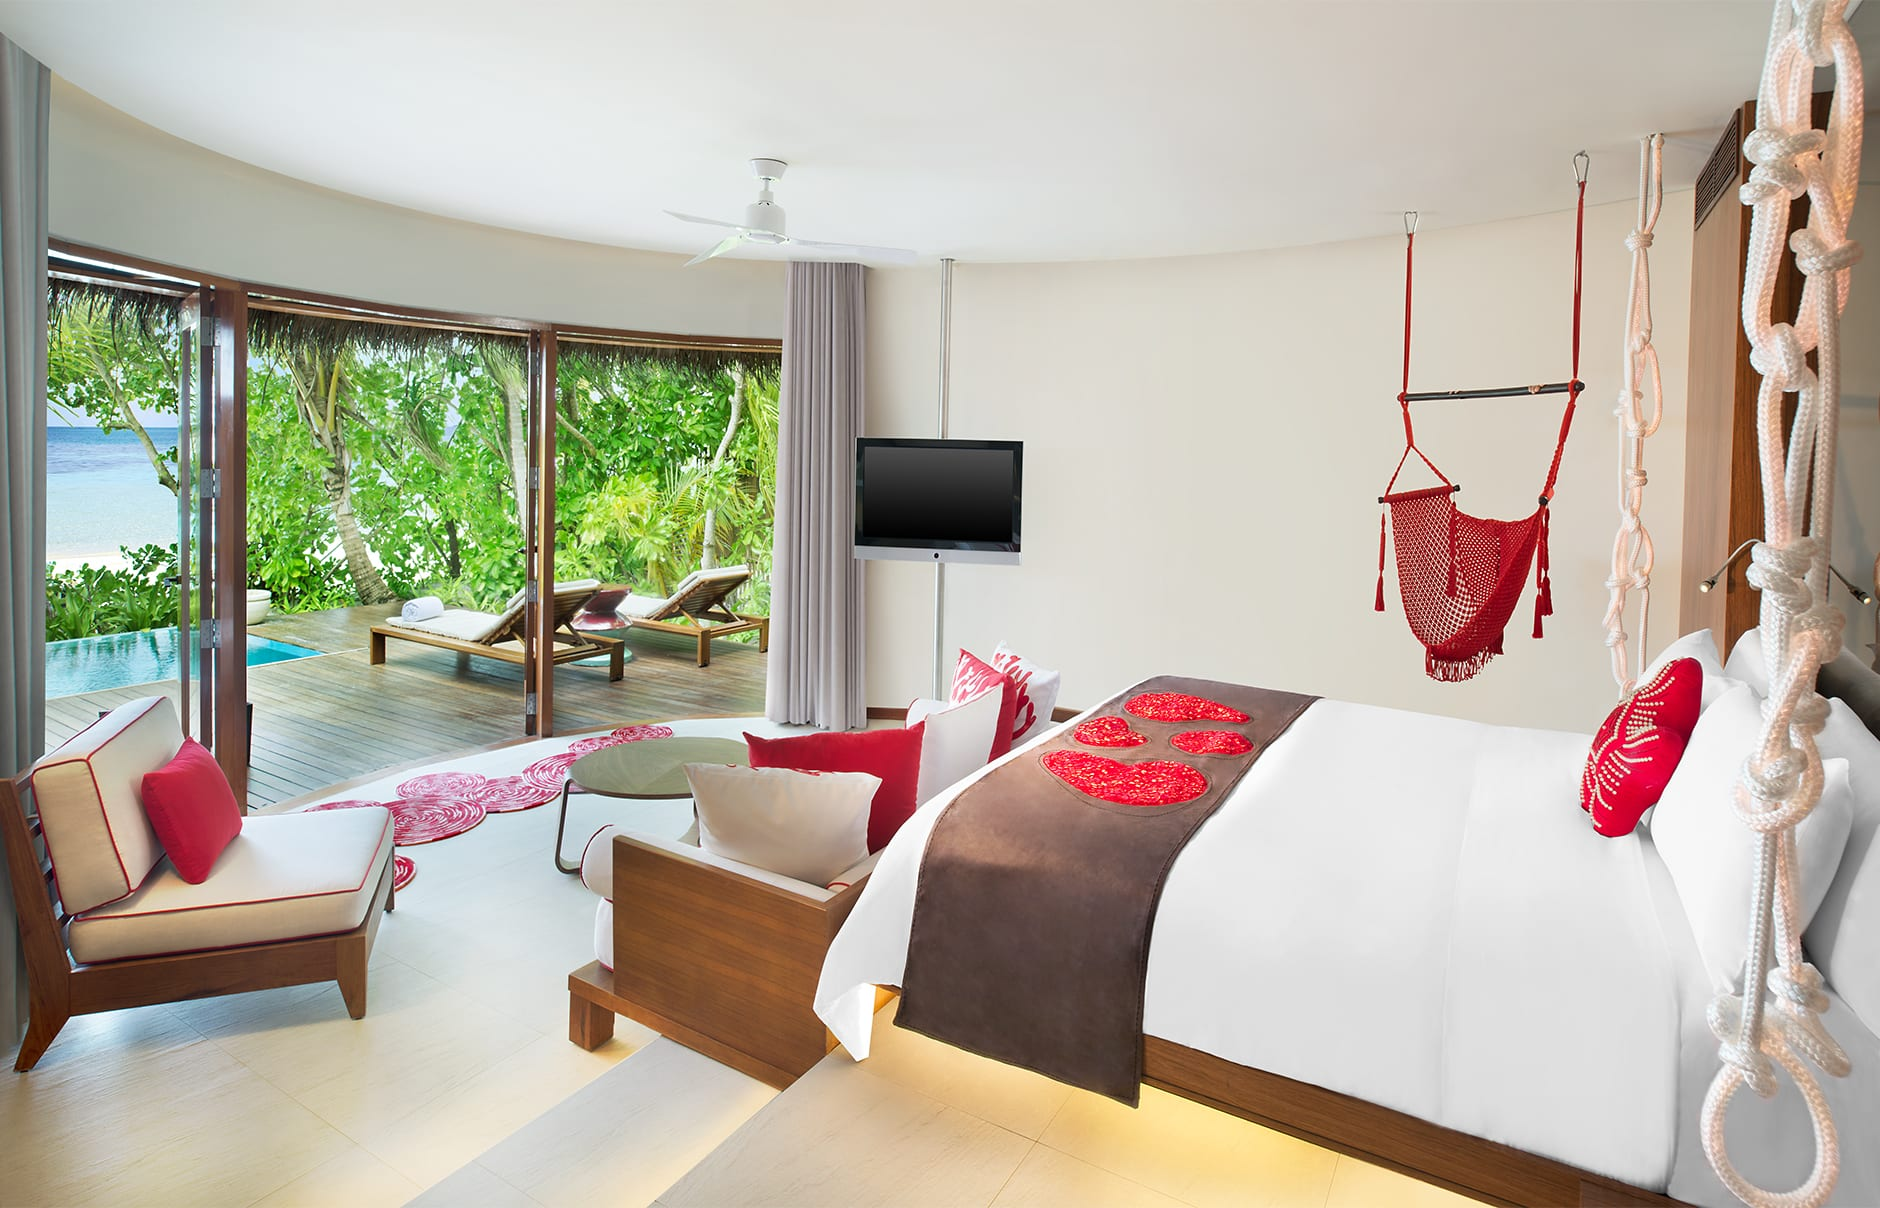 Beach Oasis Retreat. W Maldives, Fesdu Island, Maldives. Hotel Review by TravelPlusStyle. Photo © Marriott International